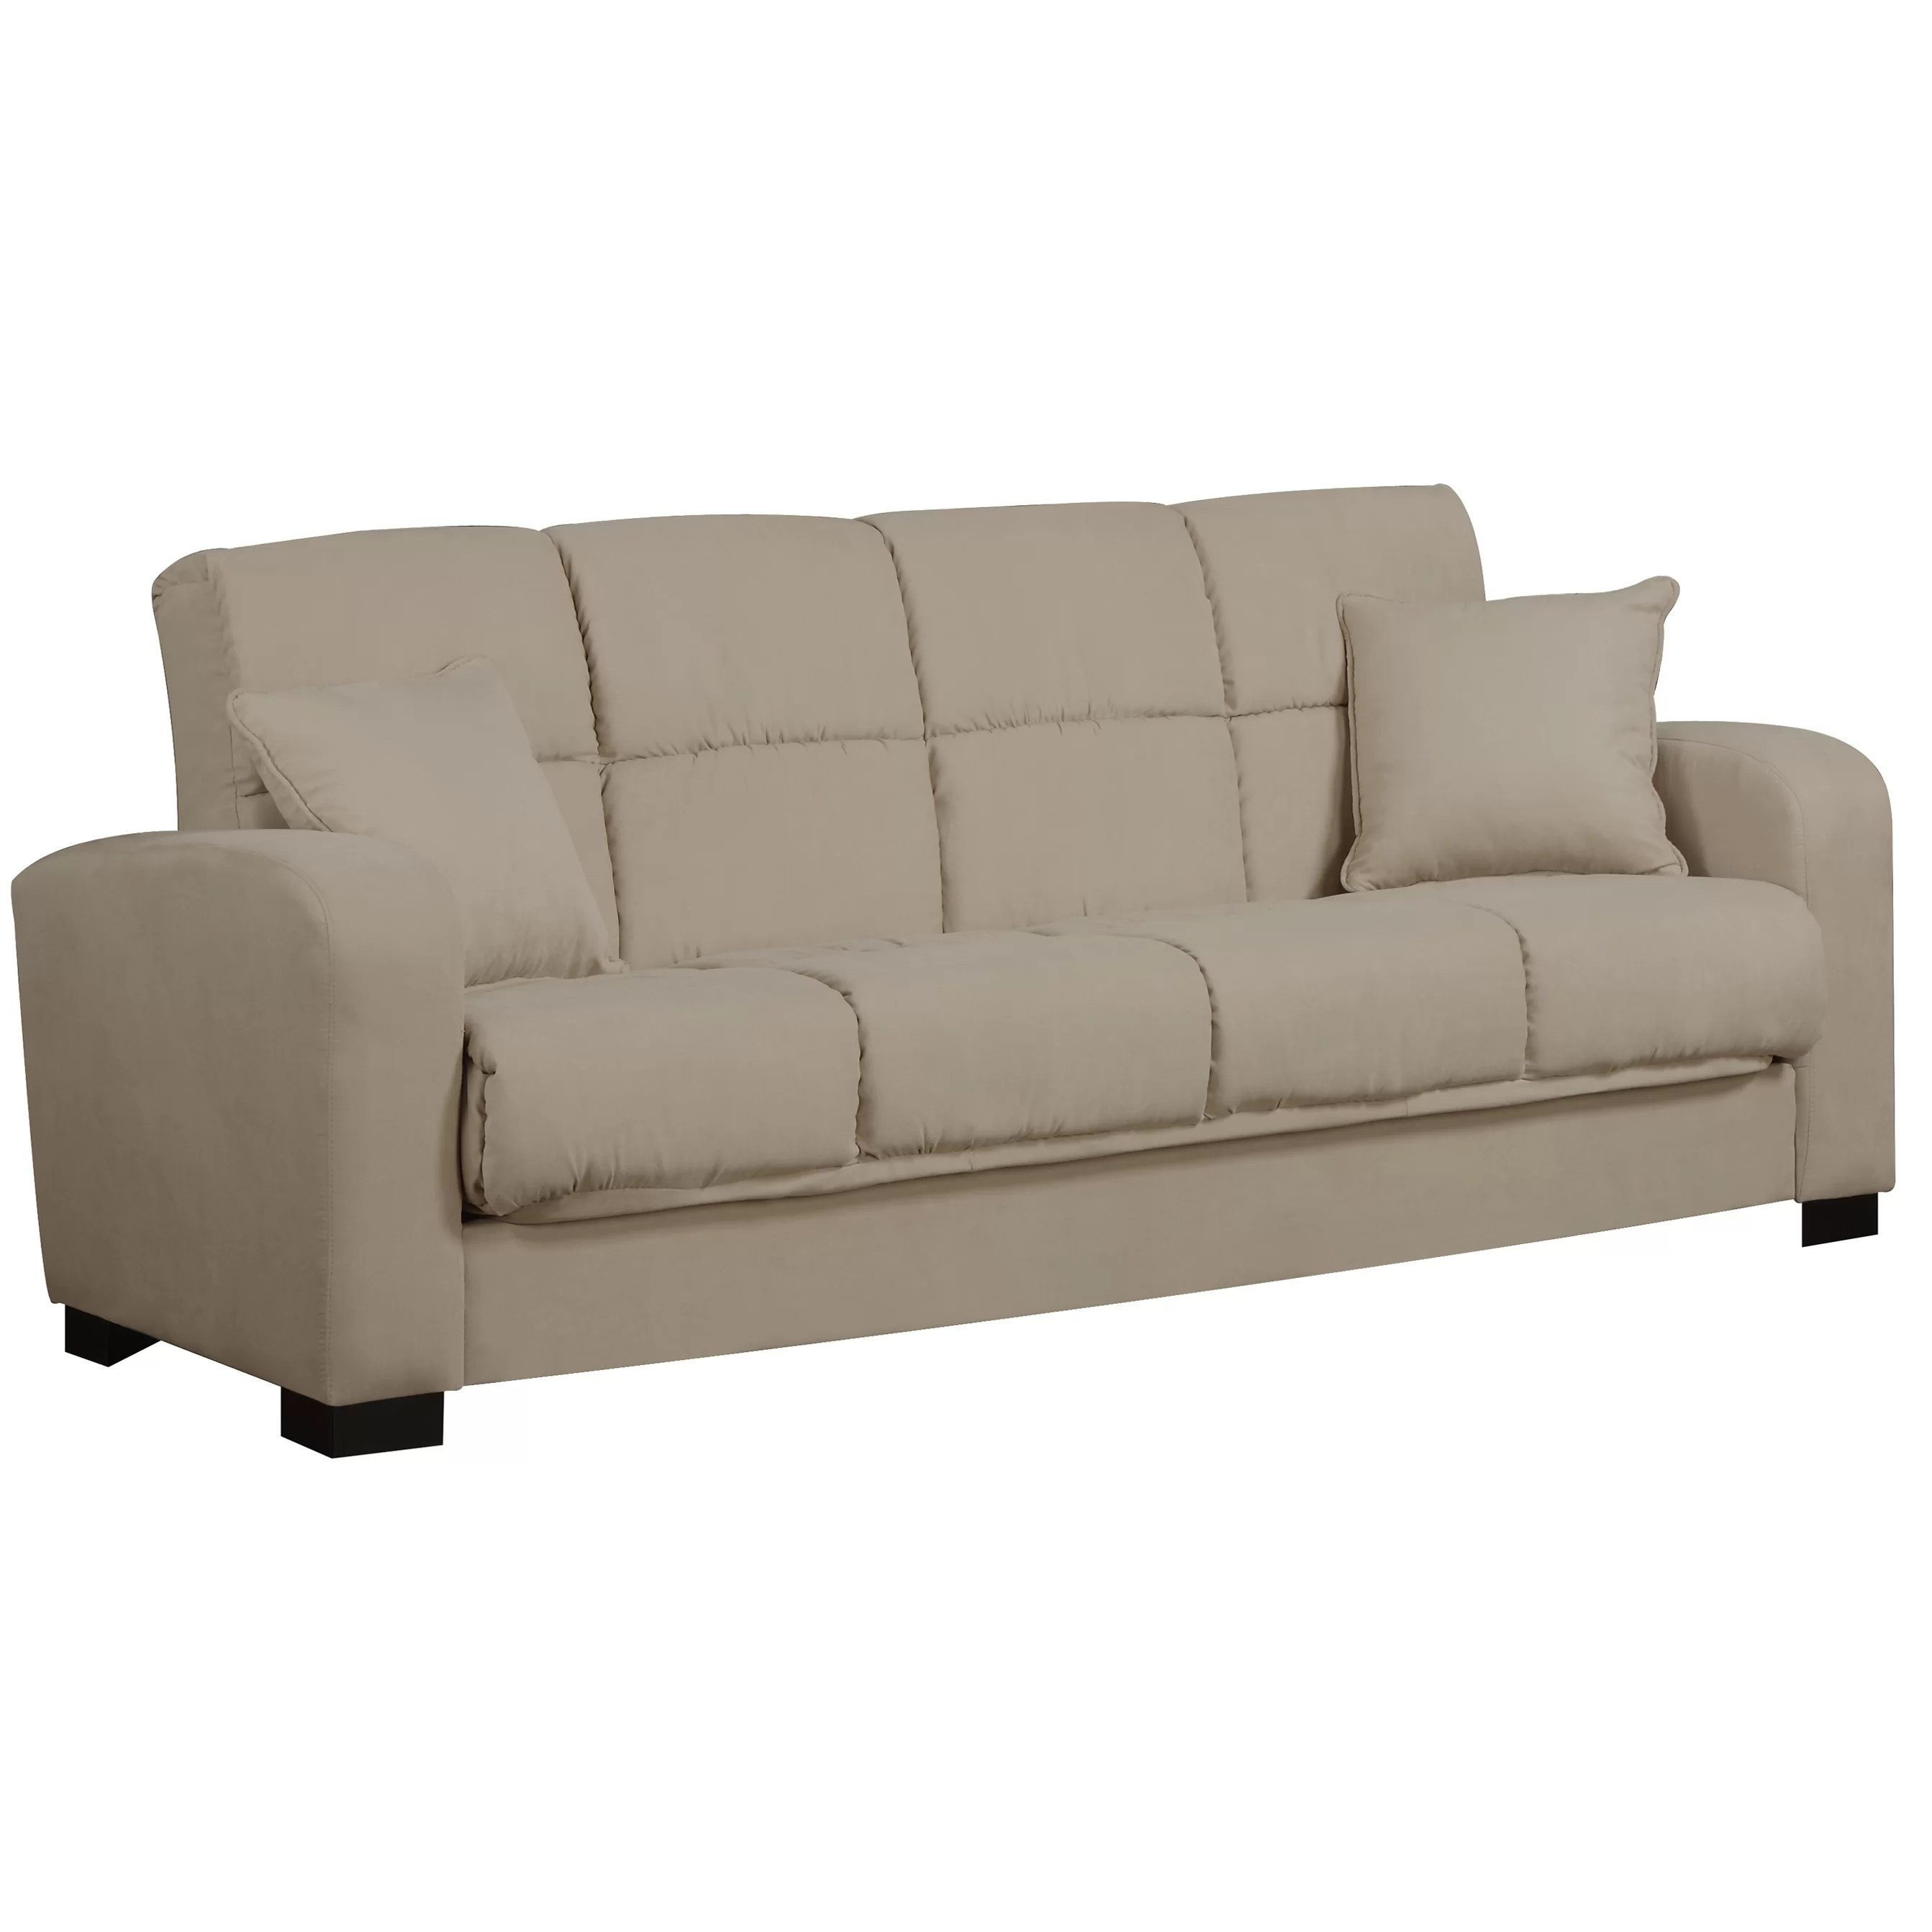 Convertible Chair Sleeper Andover Mills Richardson Full Convertible Sleeper Sofa